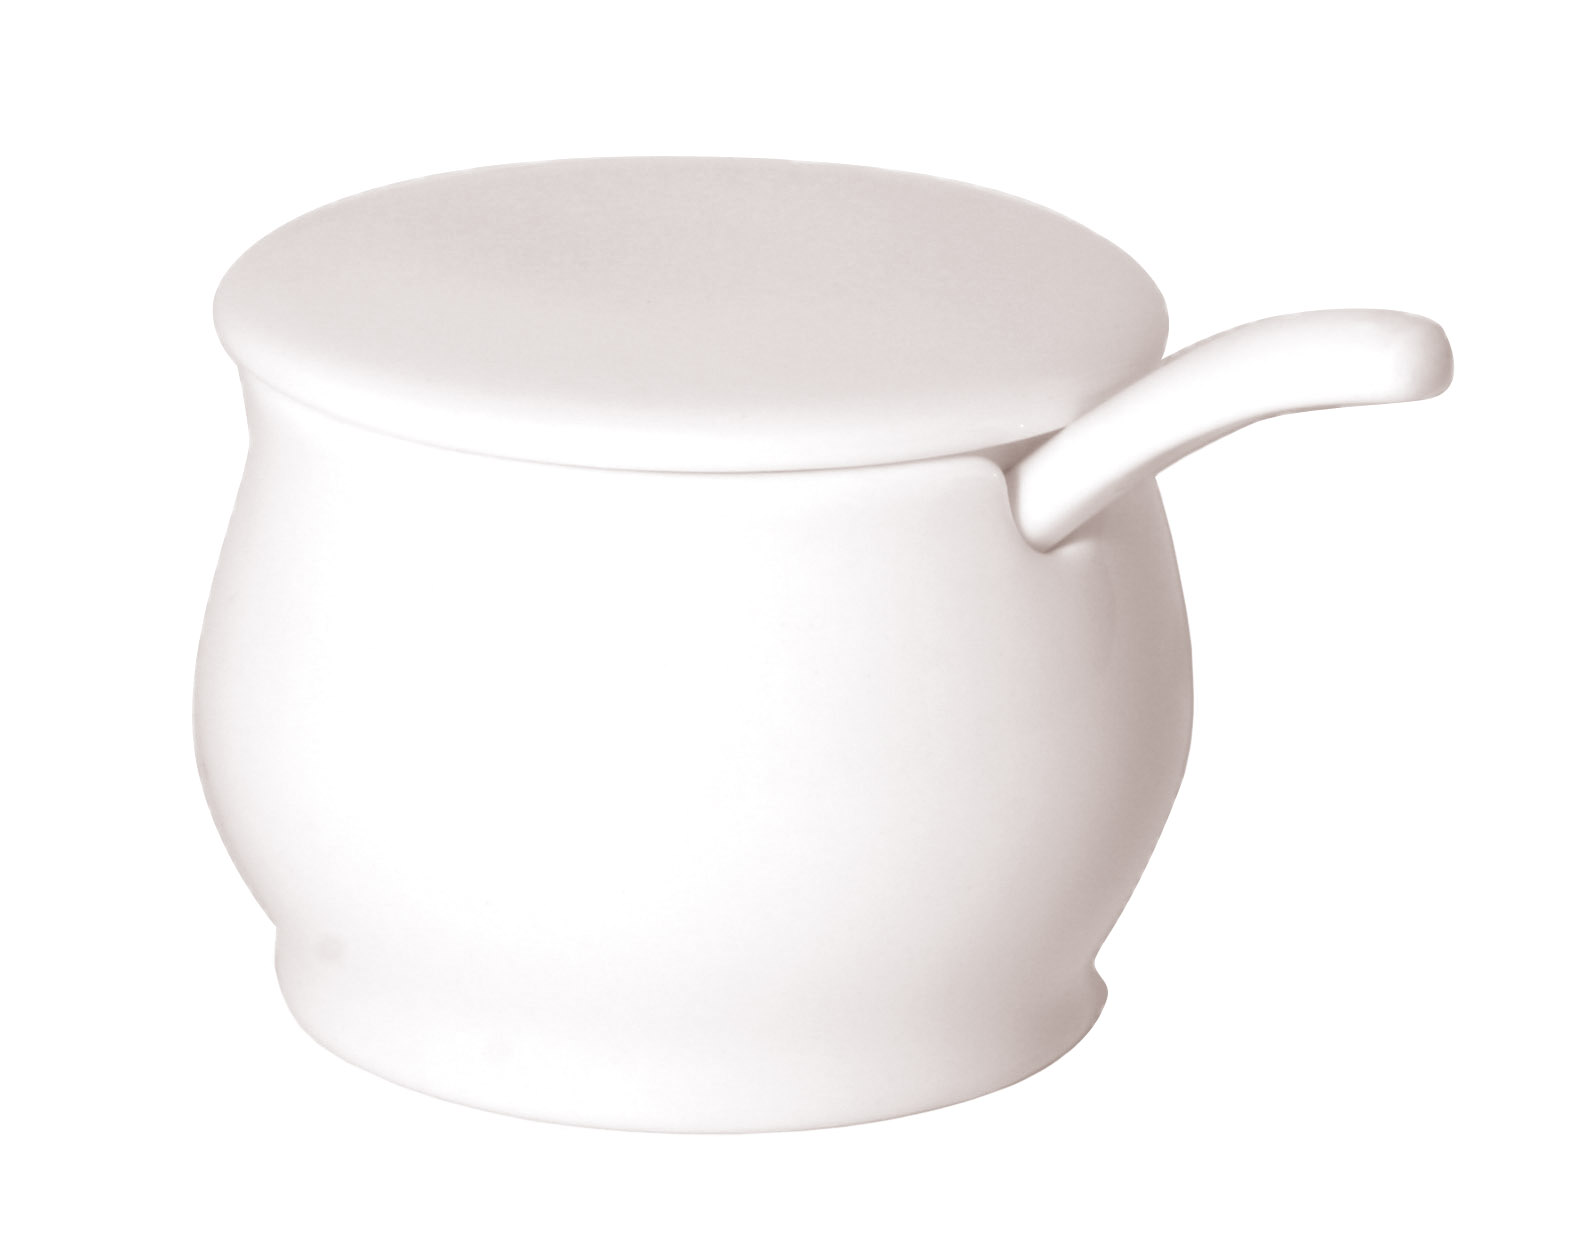 MUSTARD POT W/SLOTTED LID - 8CL (24)